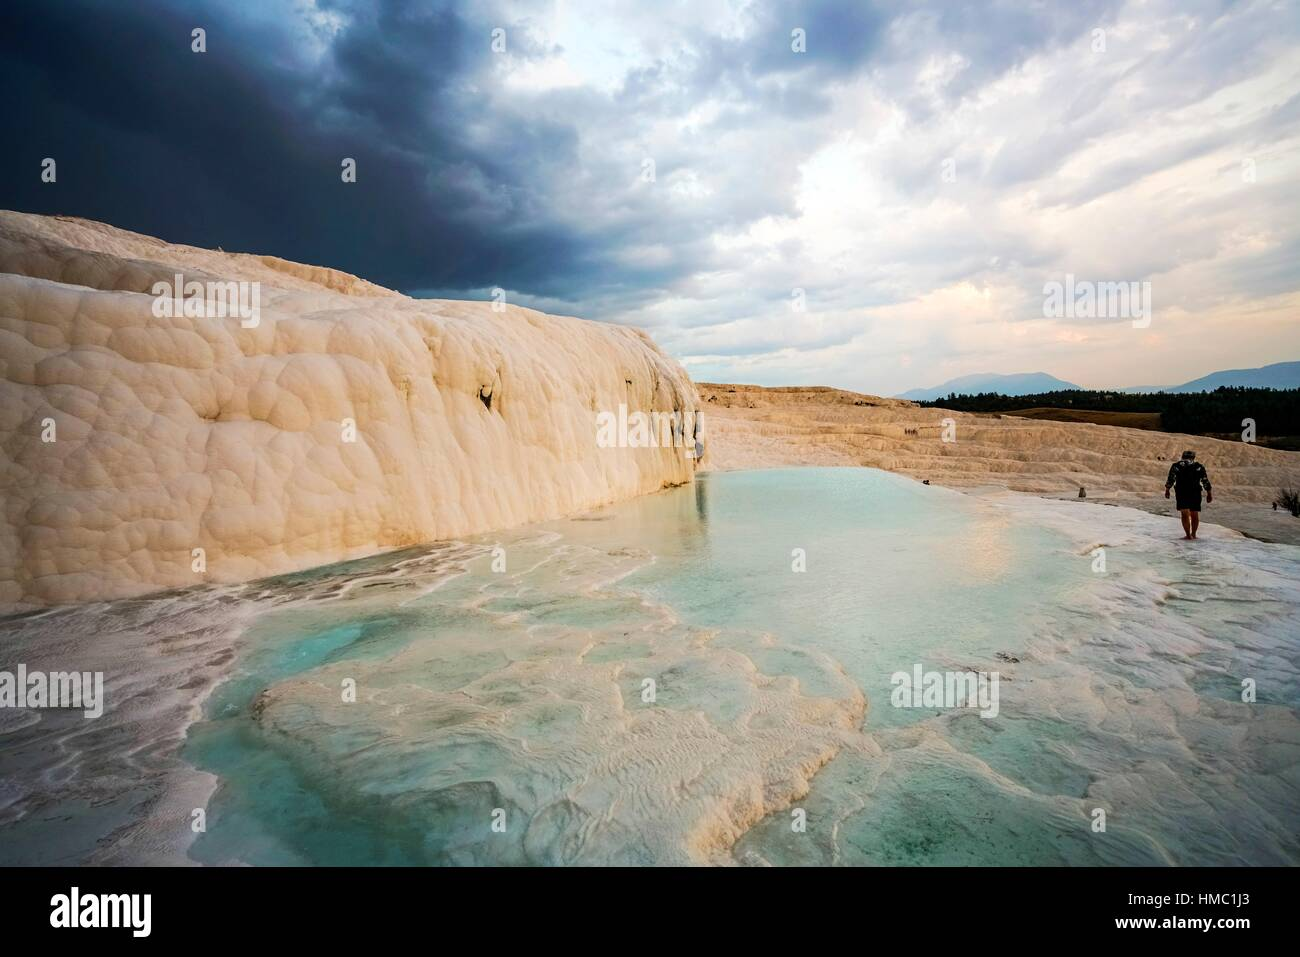 Pamukkale thermal waters. Turkey. - Stock Image